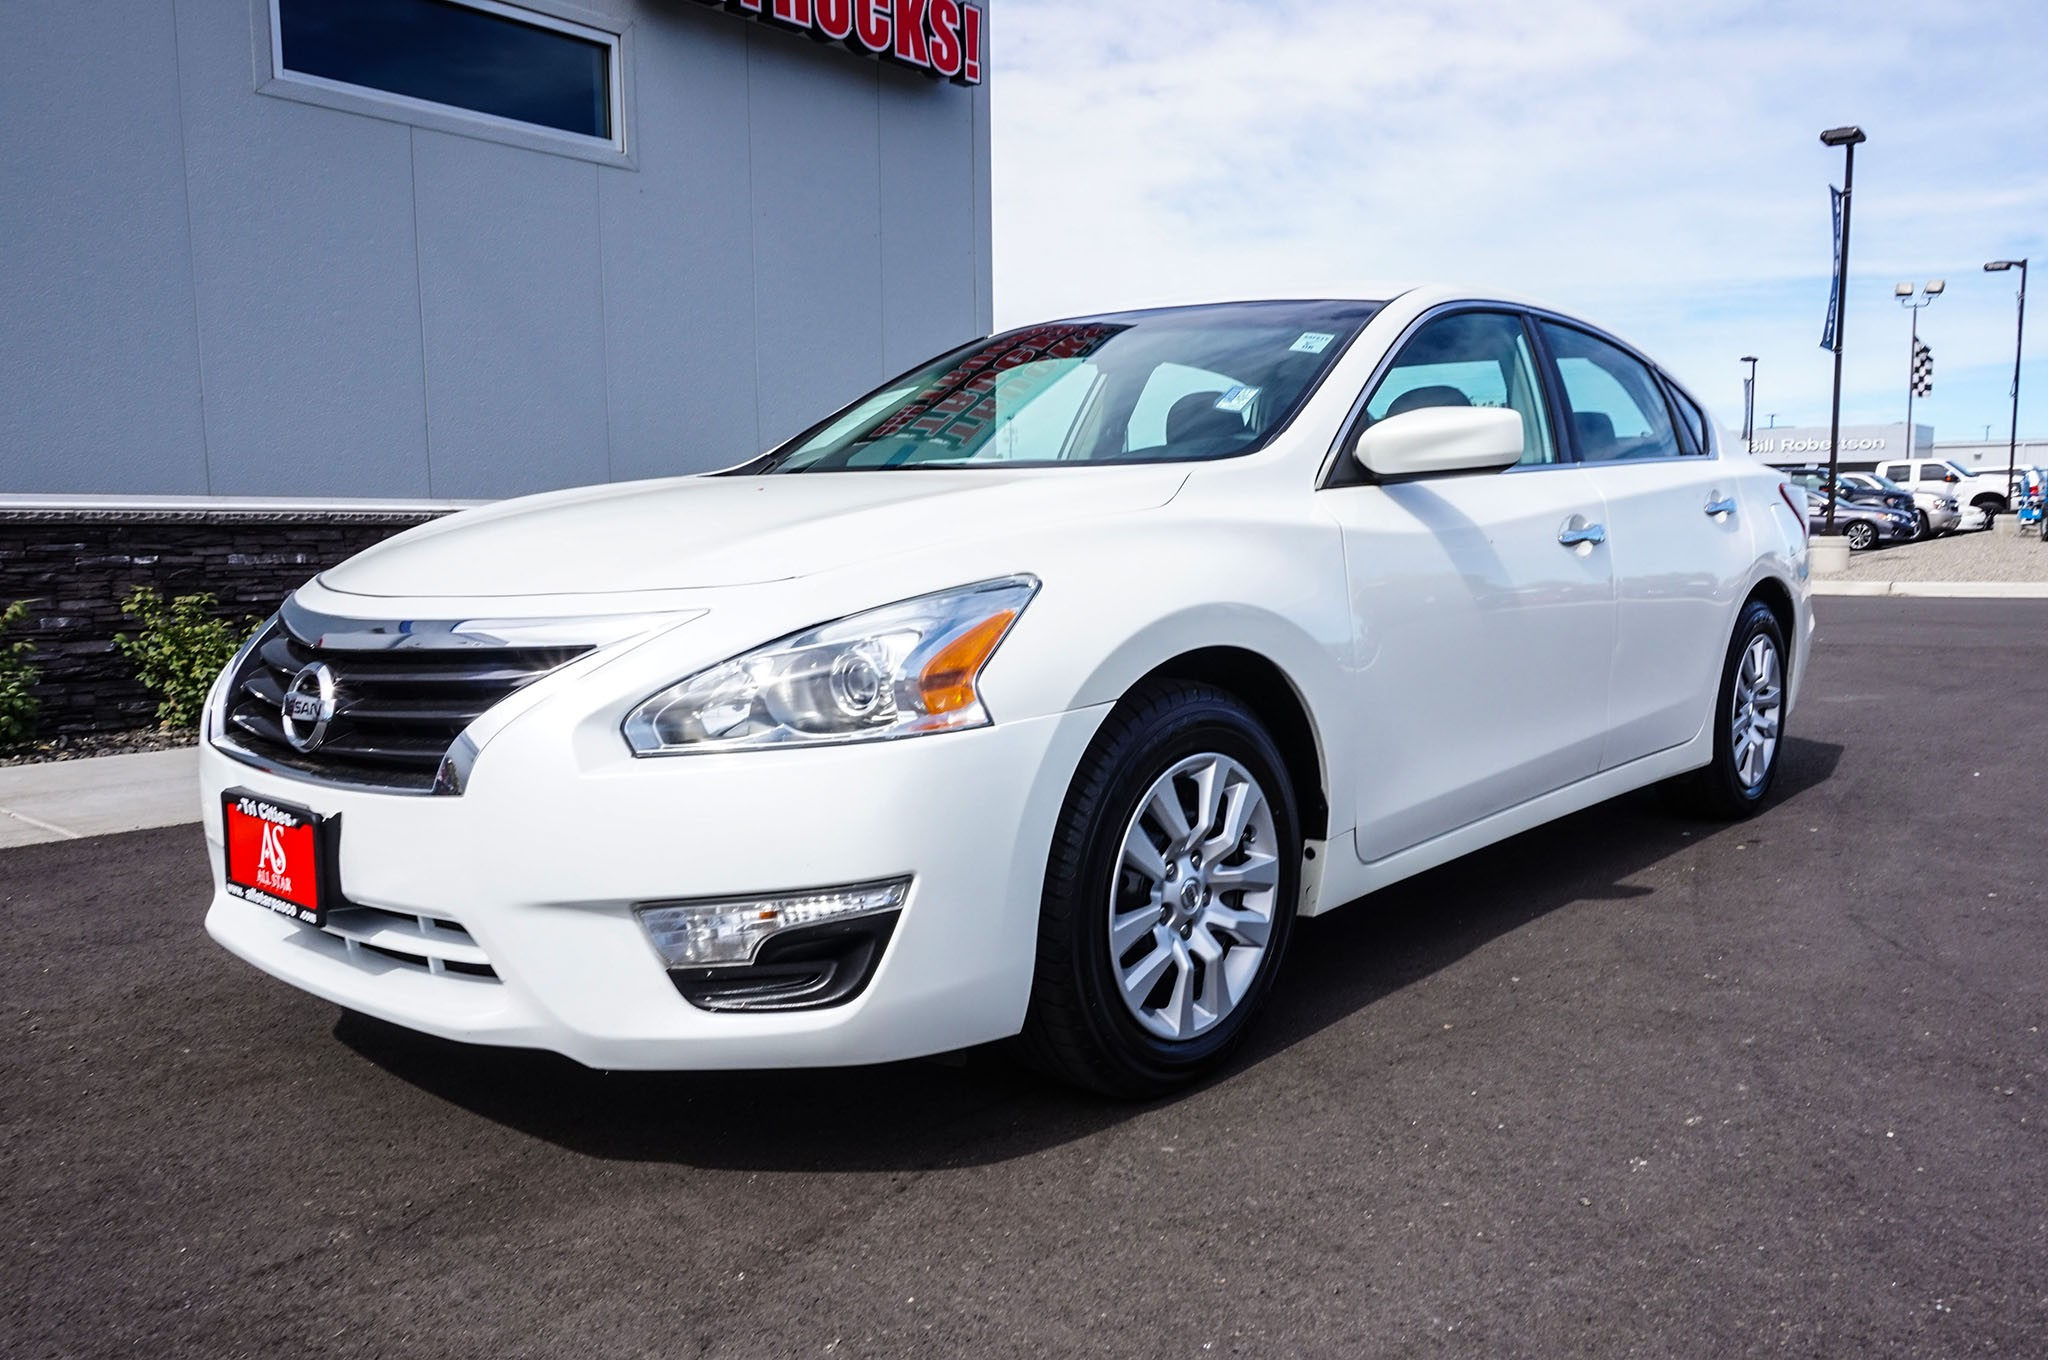 Used 2013 Nissan Altima S Fwd Sedan For Sale 80416